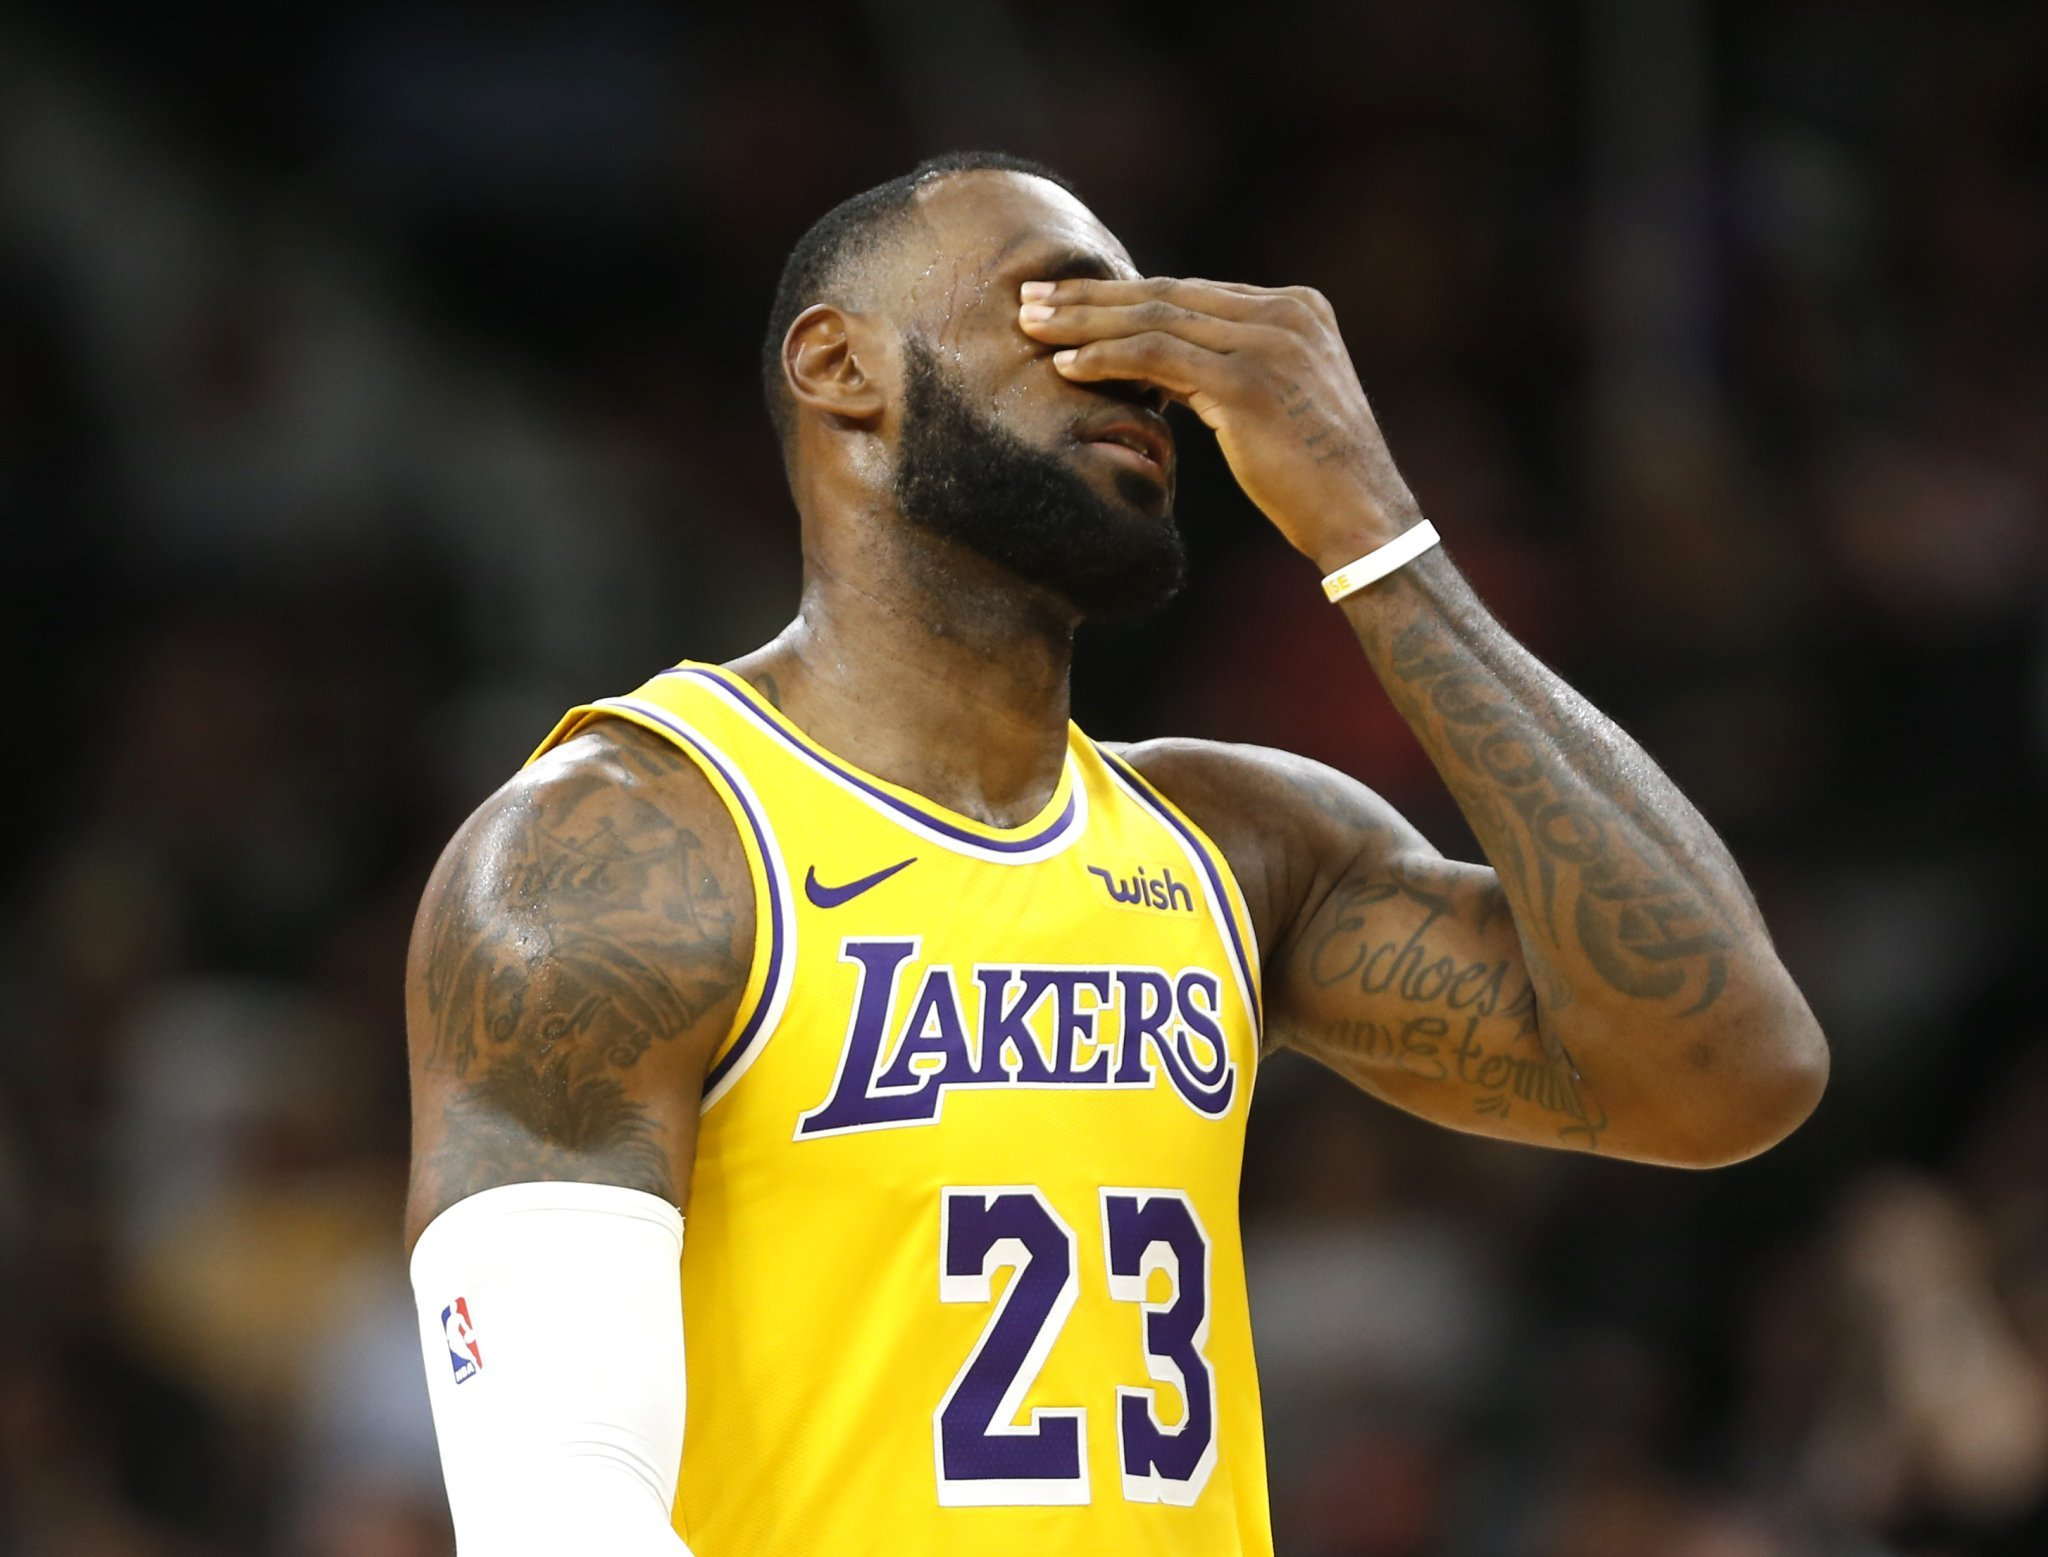 Map shows LeBron James is the most hated NBA player in many U.S. states